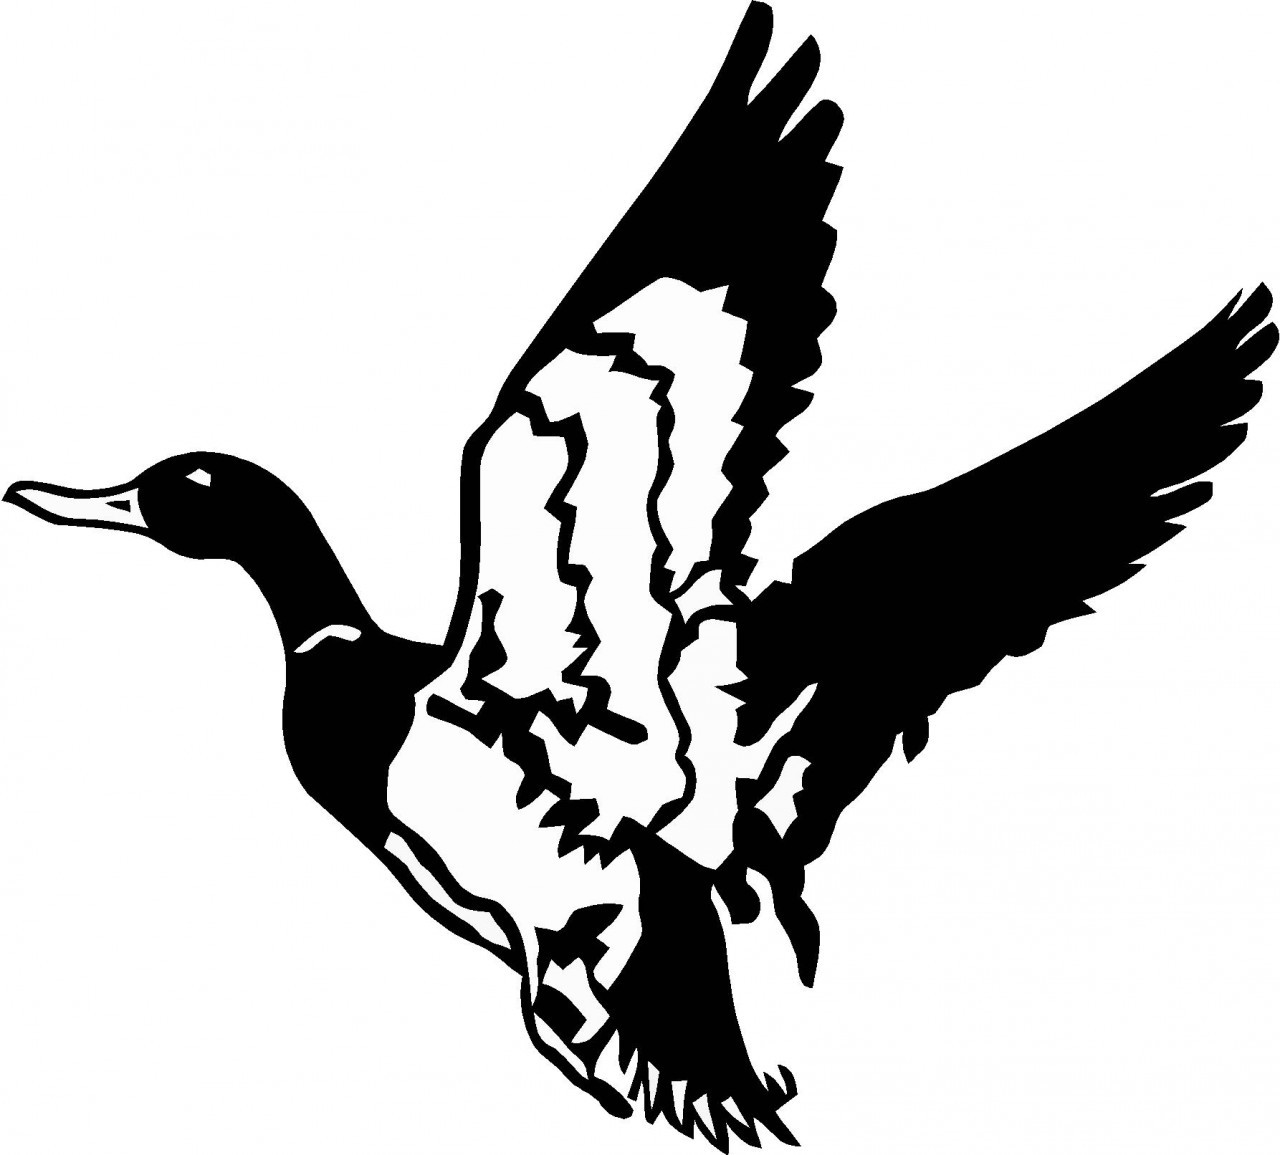 Free Flying Duck Cliparts, Download Free Clip Art, Free Clip Art on.